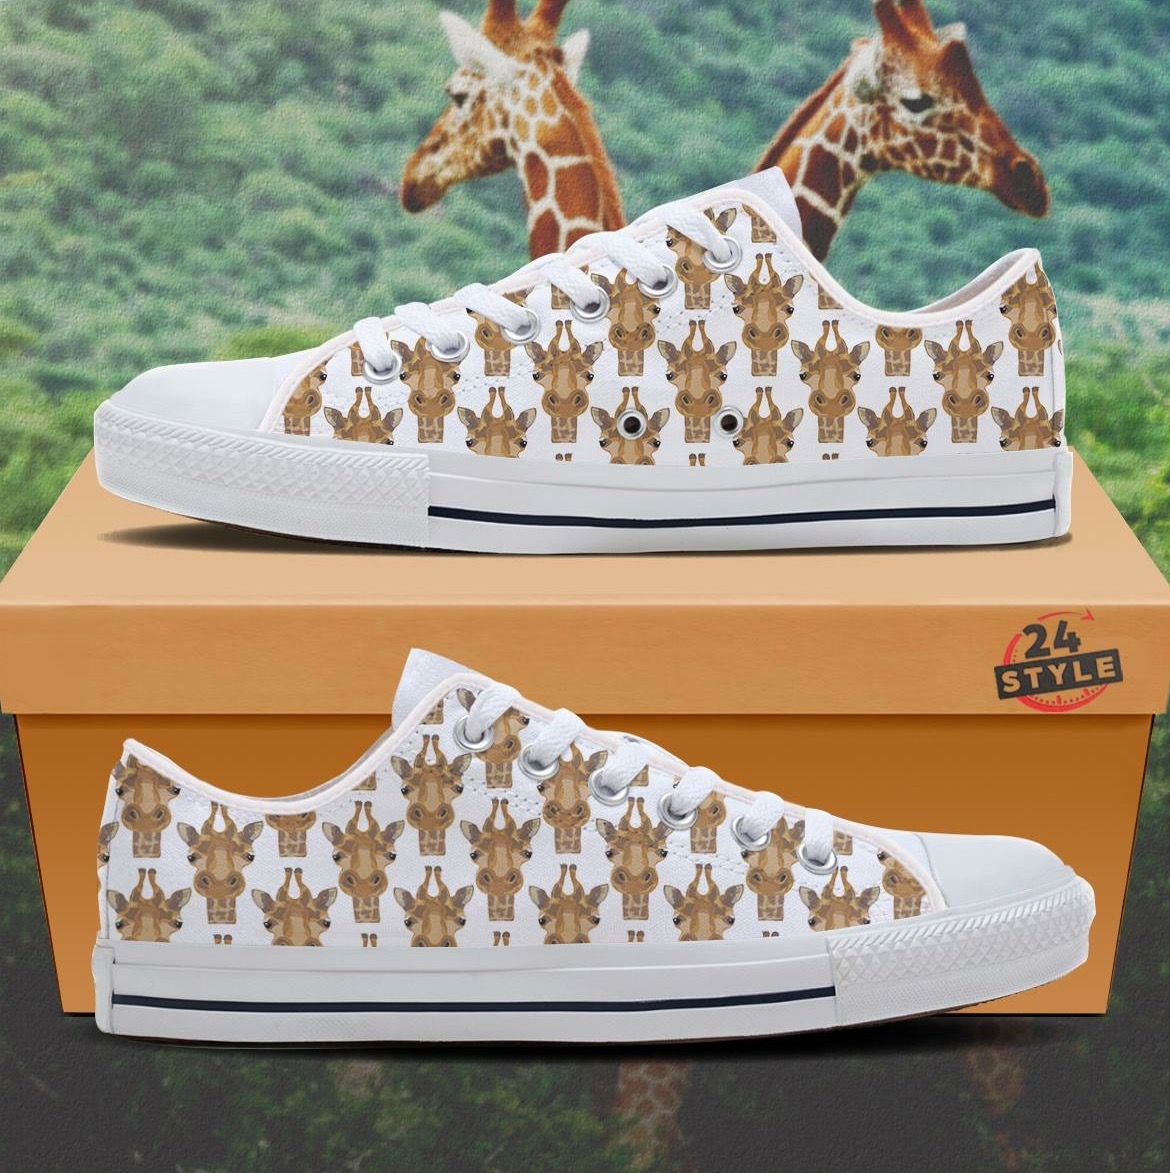 good grief 2 go giraffe shoes by tsc